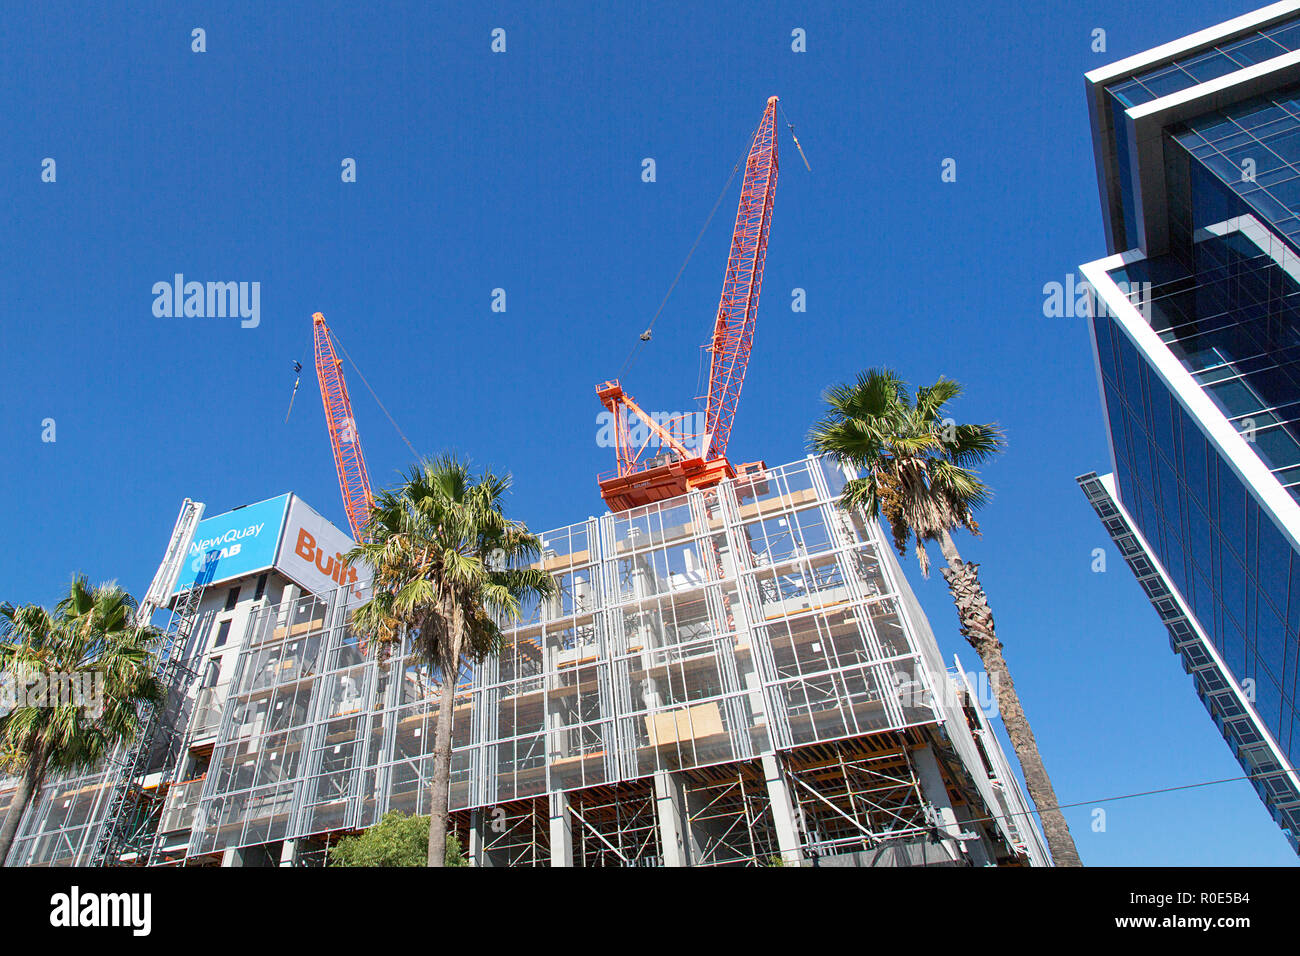 Melbourne, Australia: April 07, 2018: Construction of new apartment and office buildings in the Docklands Harbor area of Melbourne. - Stock Image